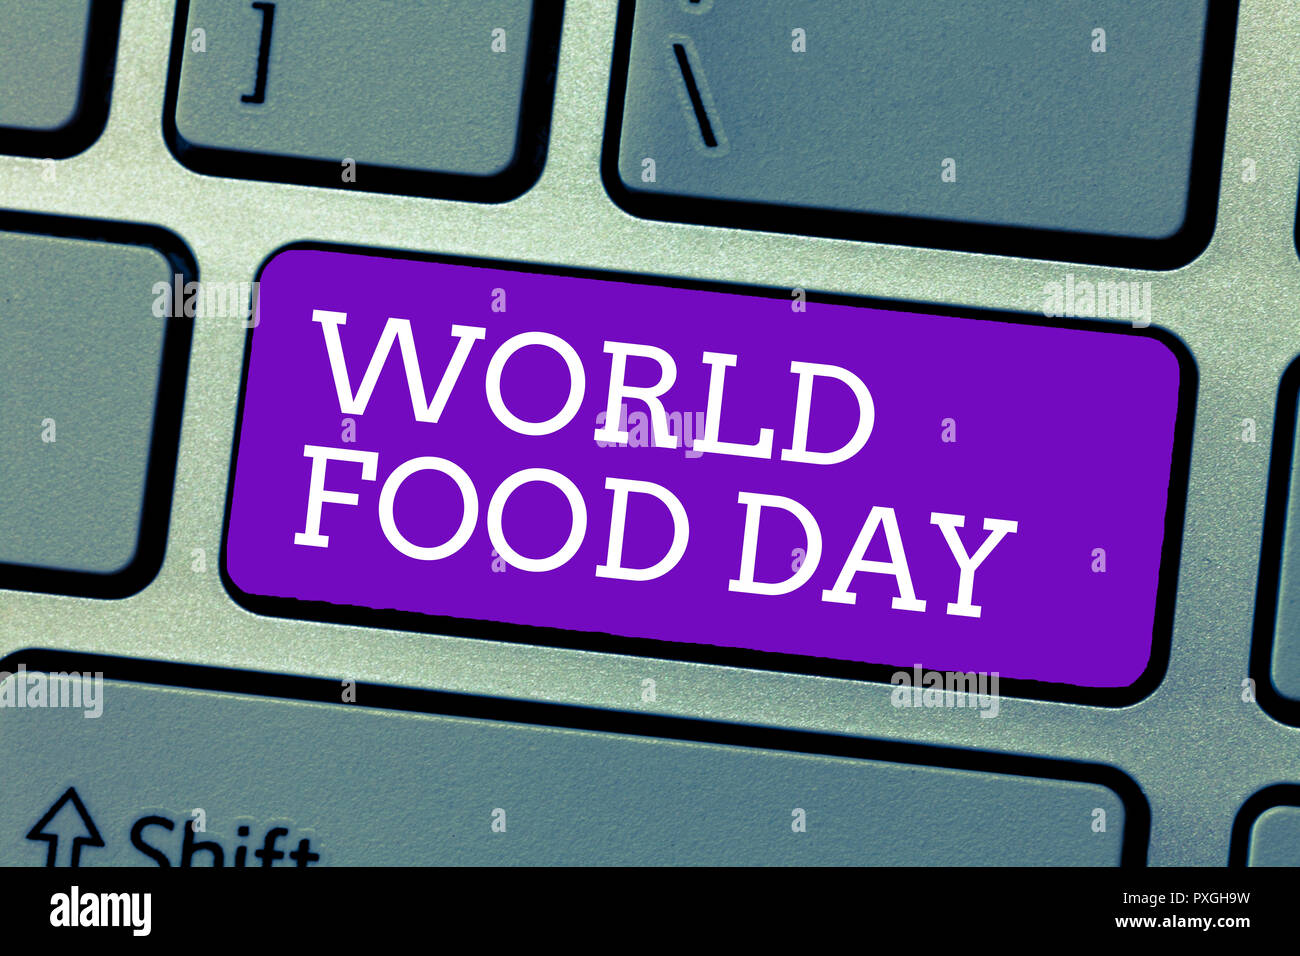 Word writing text World Food Day. Business concept for World day of action dedicated to tackling global hunger. - Stock Image